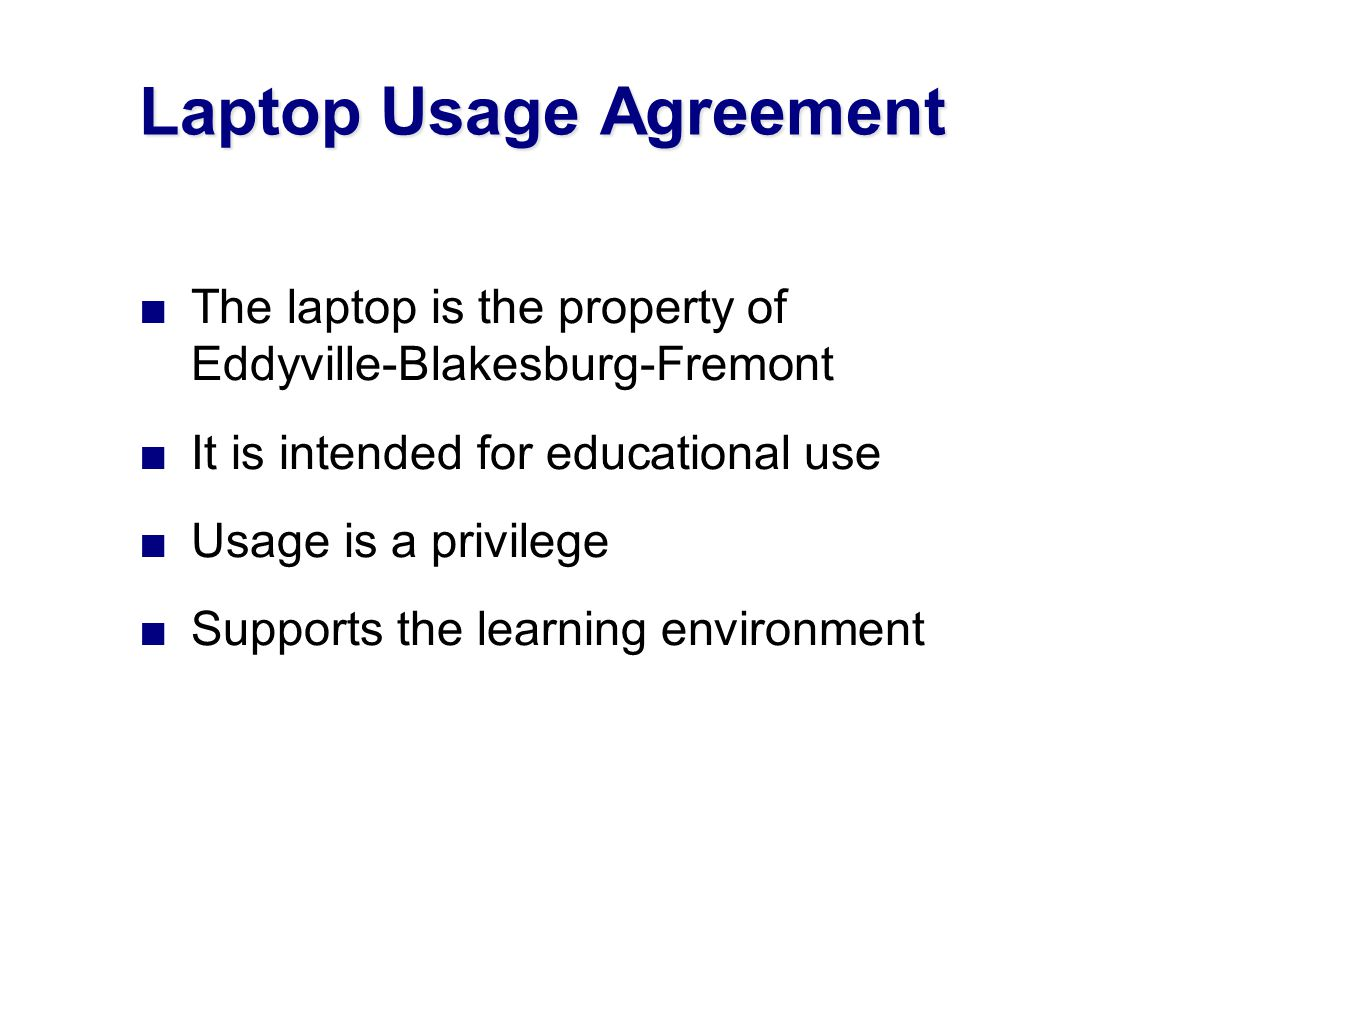 The laptop is the property of Eddyville-Blakesburg-Fremont It is intended for educational use Usage is a privilege Supports the learning environment L